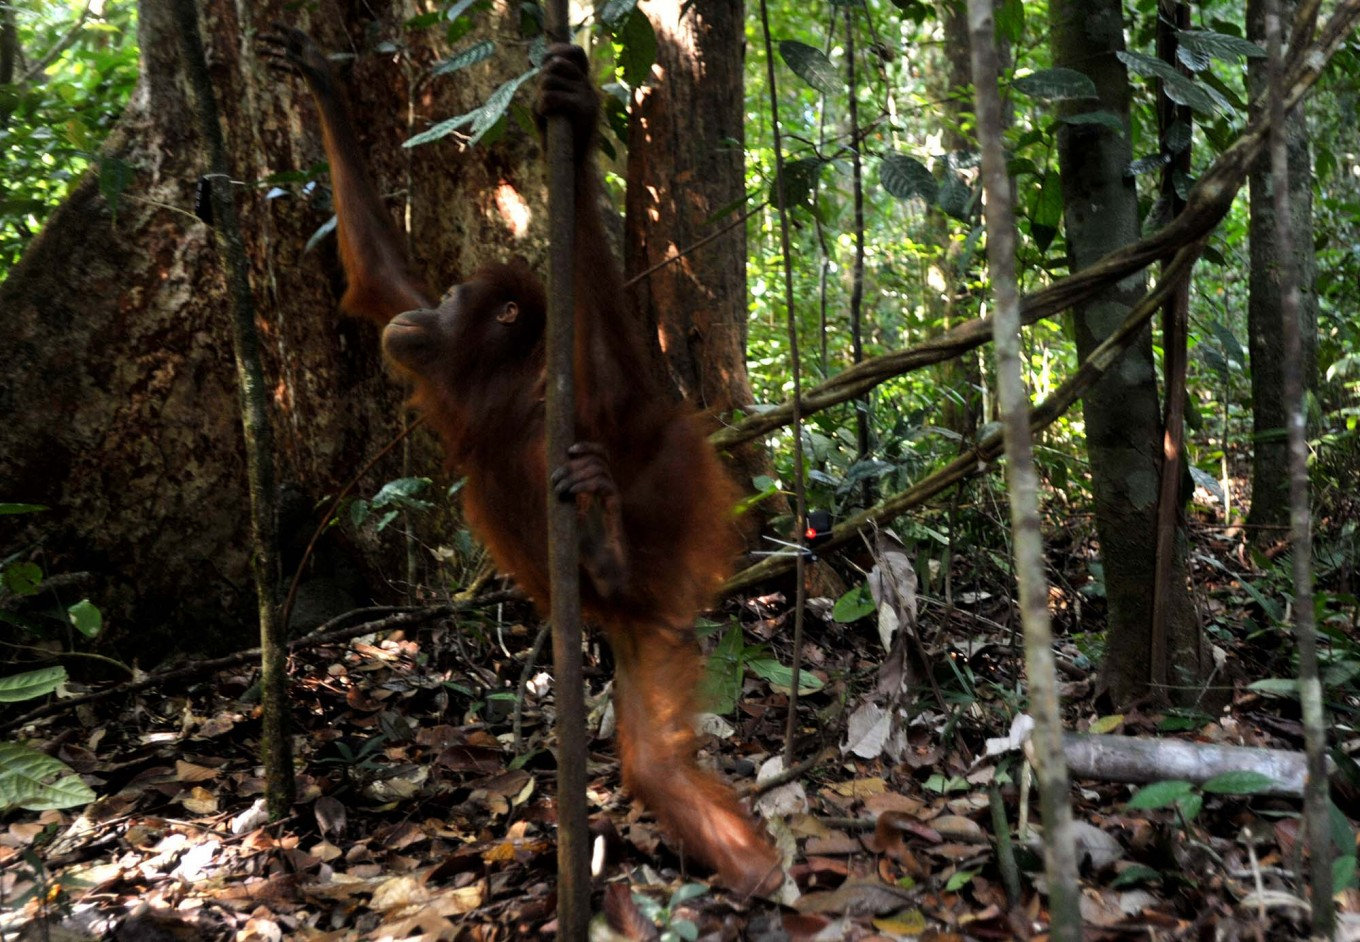 Freedom: A rescued orangutan begins climbing a tree after being released by the IAR team into the wild. JP/Dasril Roszandi